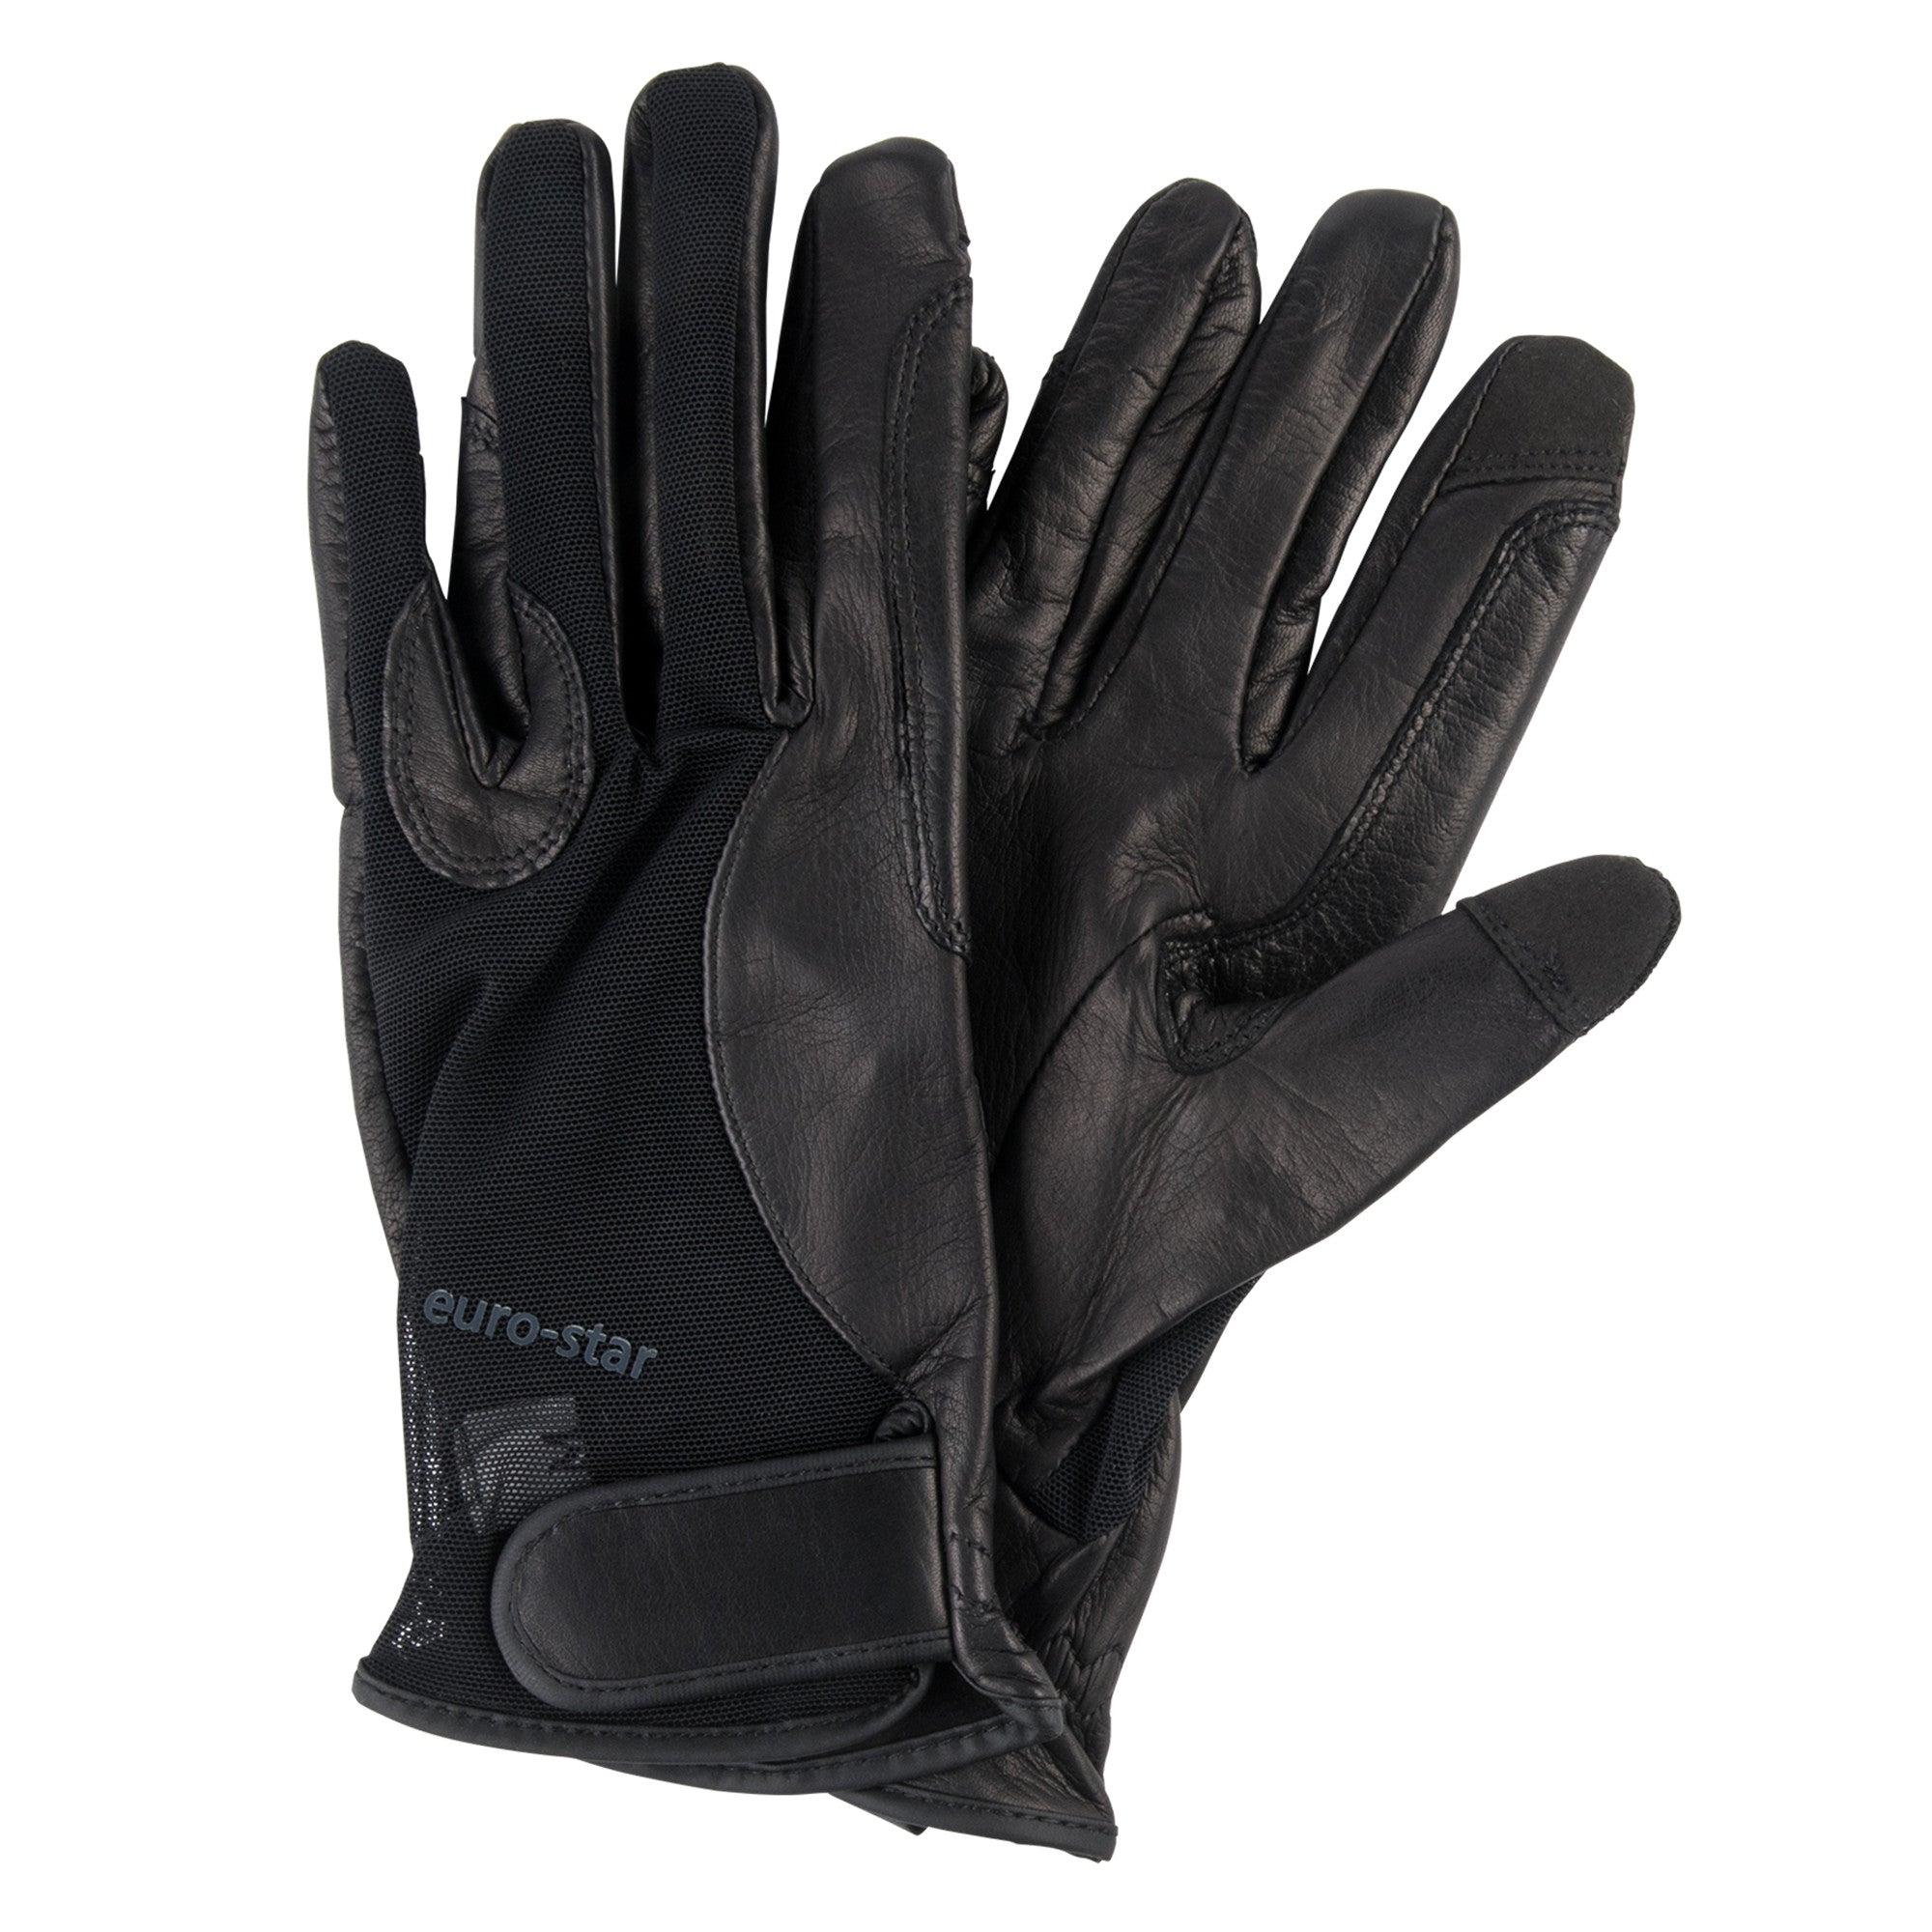 ES Riding Gloves Airflow